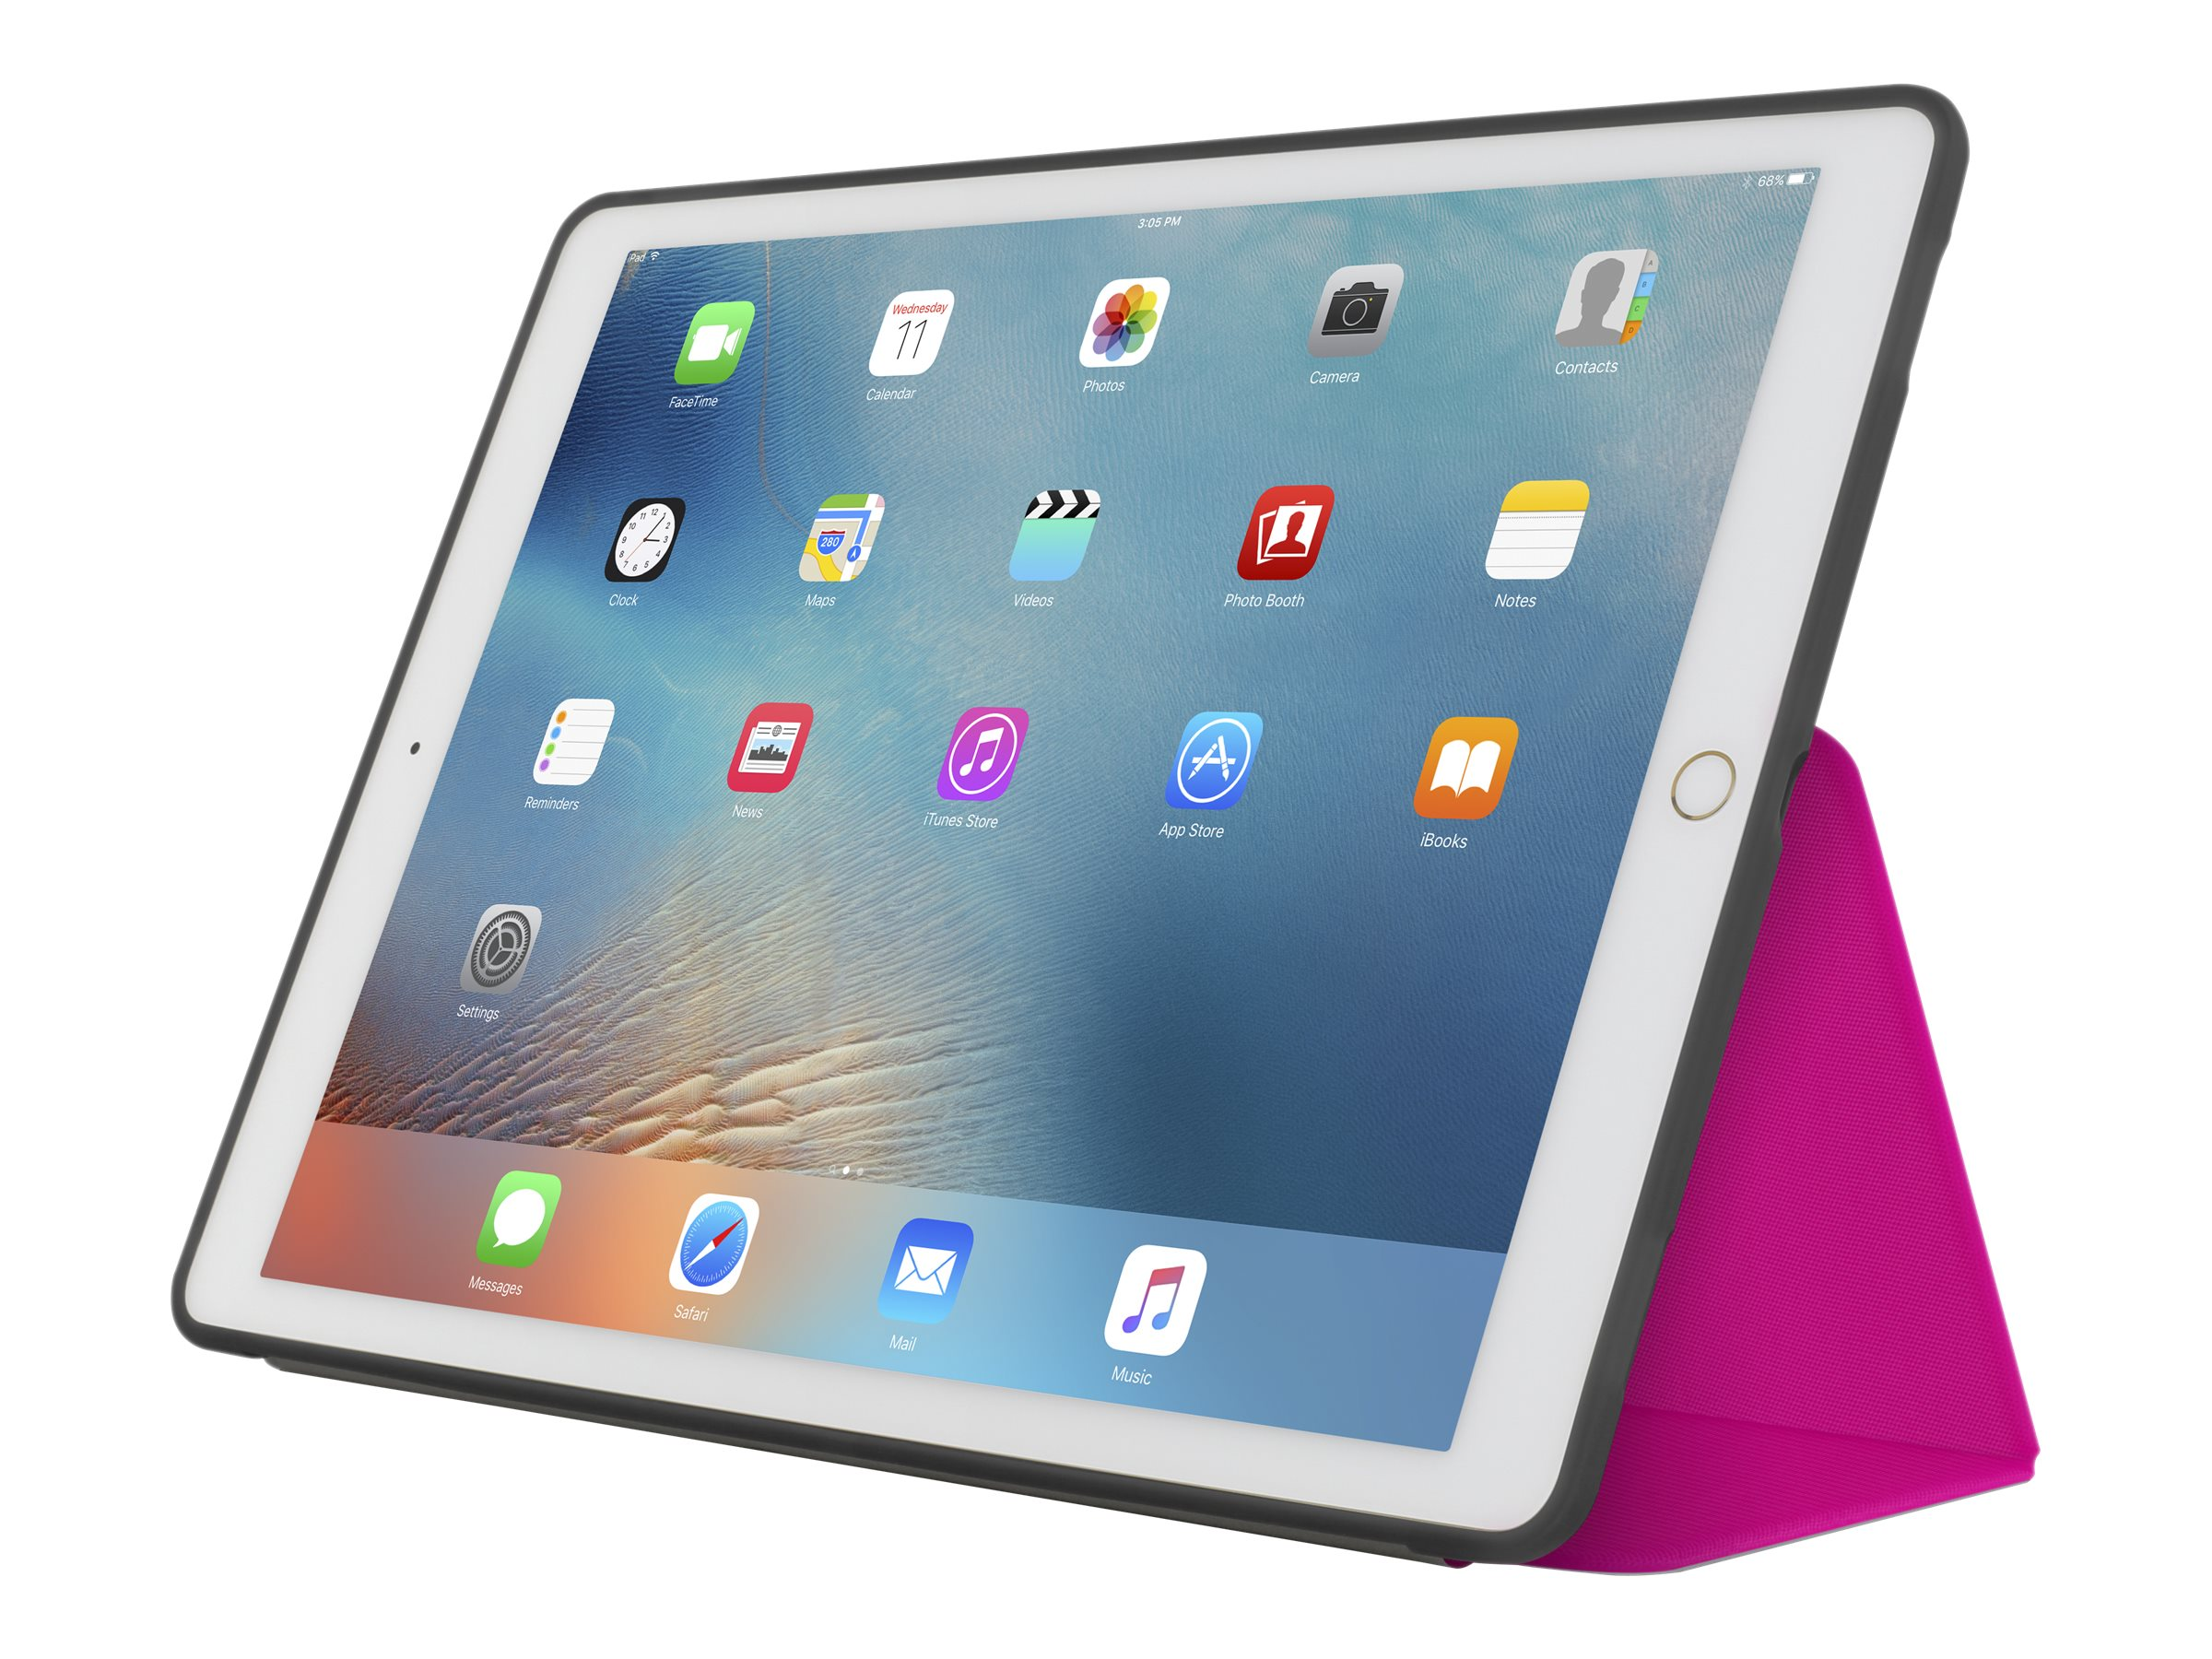 Incipio Clarion Shock Absorbing Translucent Folio for iPad Pro 12.9, Pink